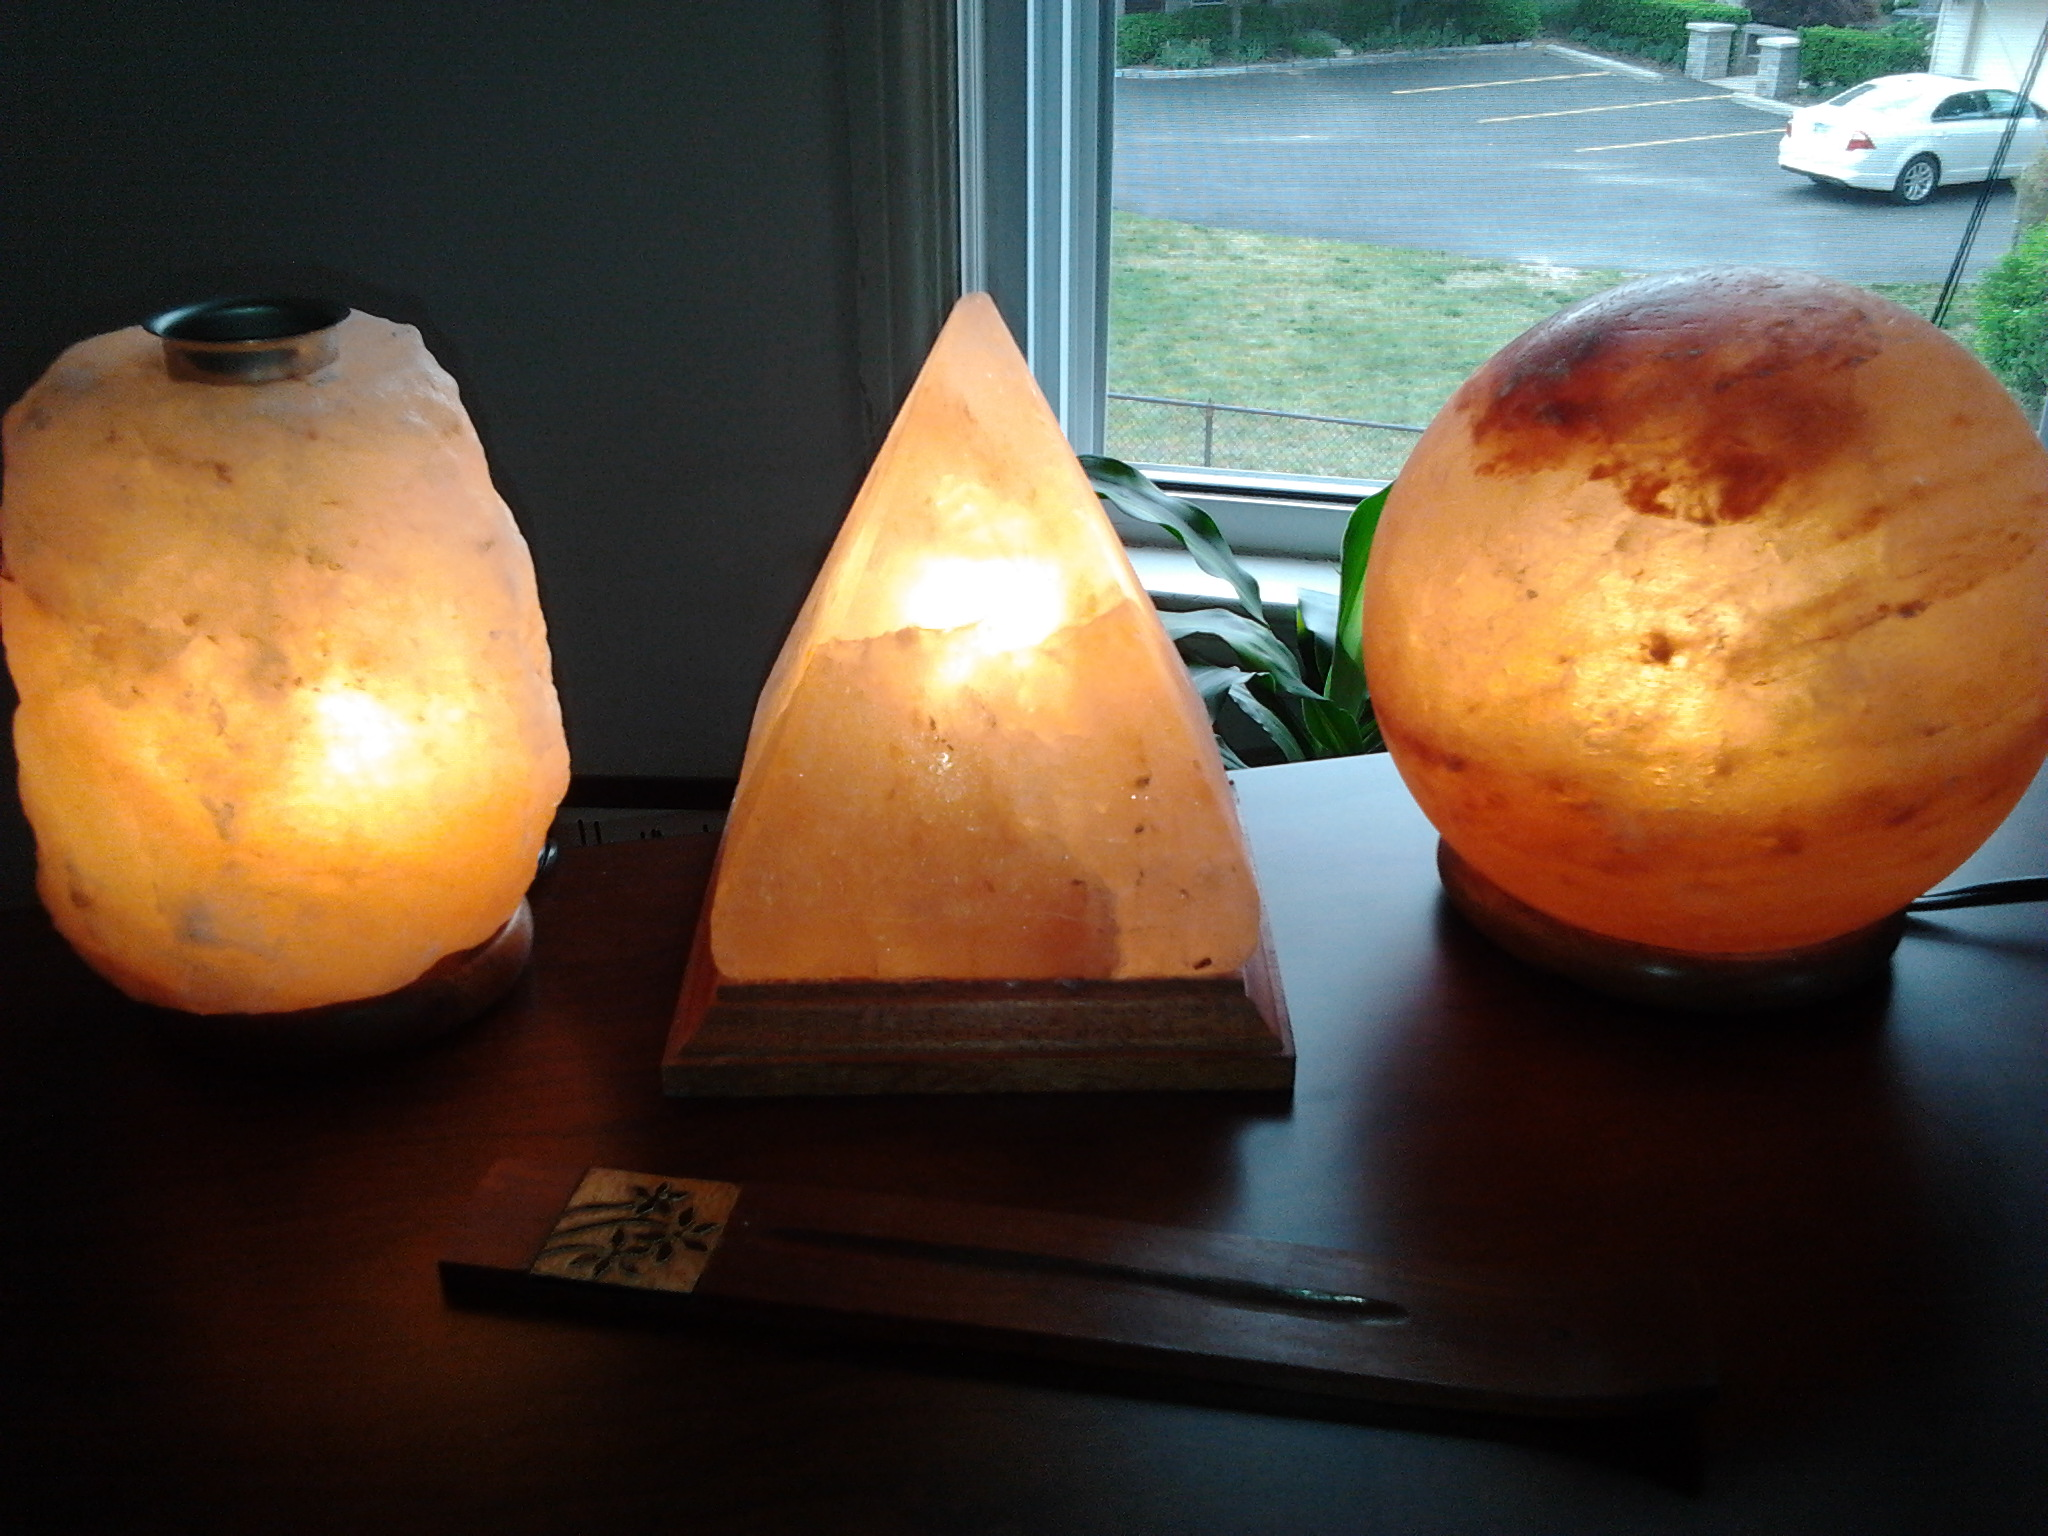 Are Salt Lamps Safe To Use : Is The Lighting In Your Home Affecting Your Sleep?